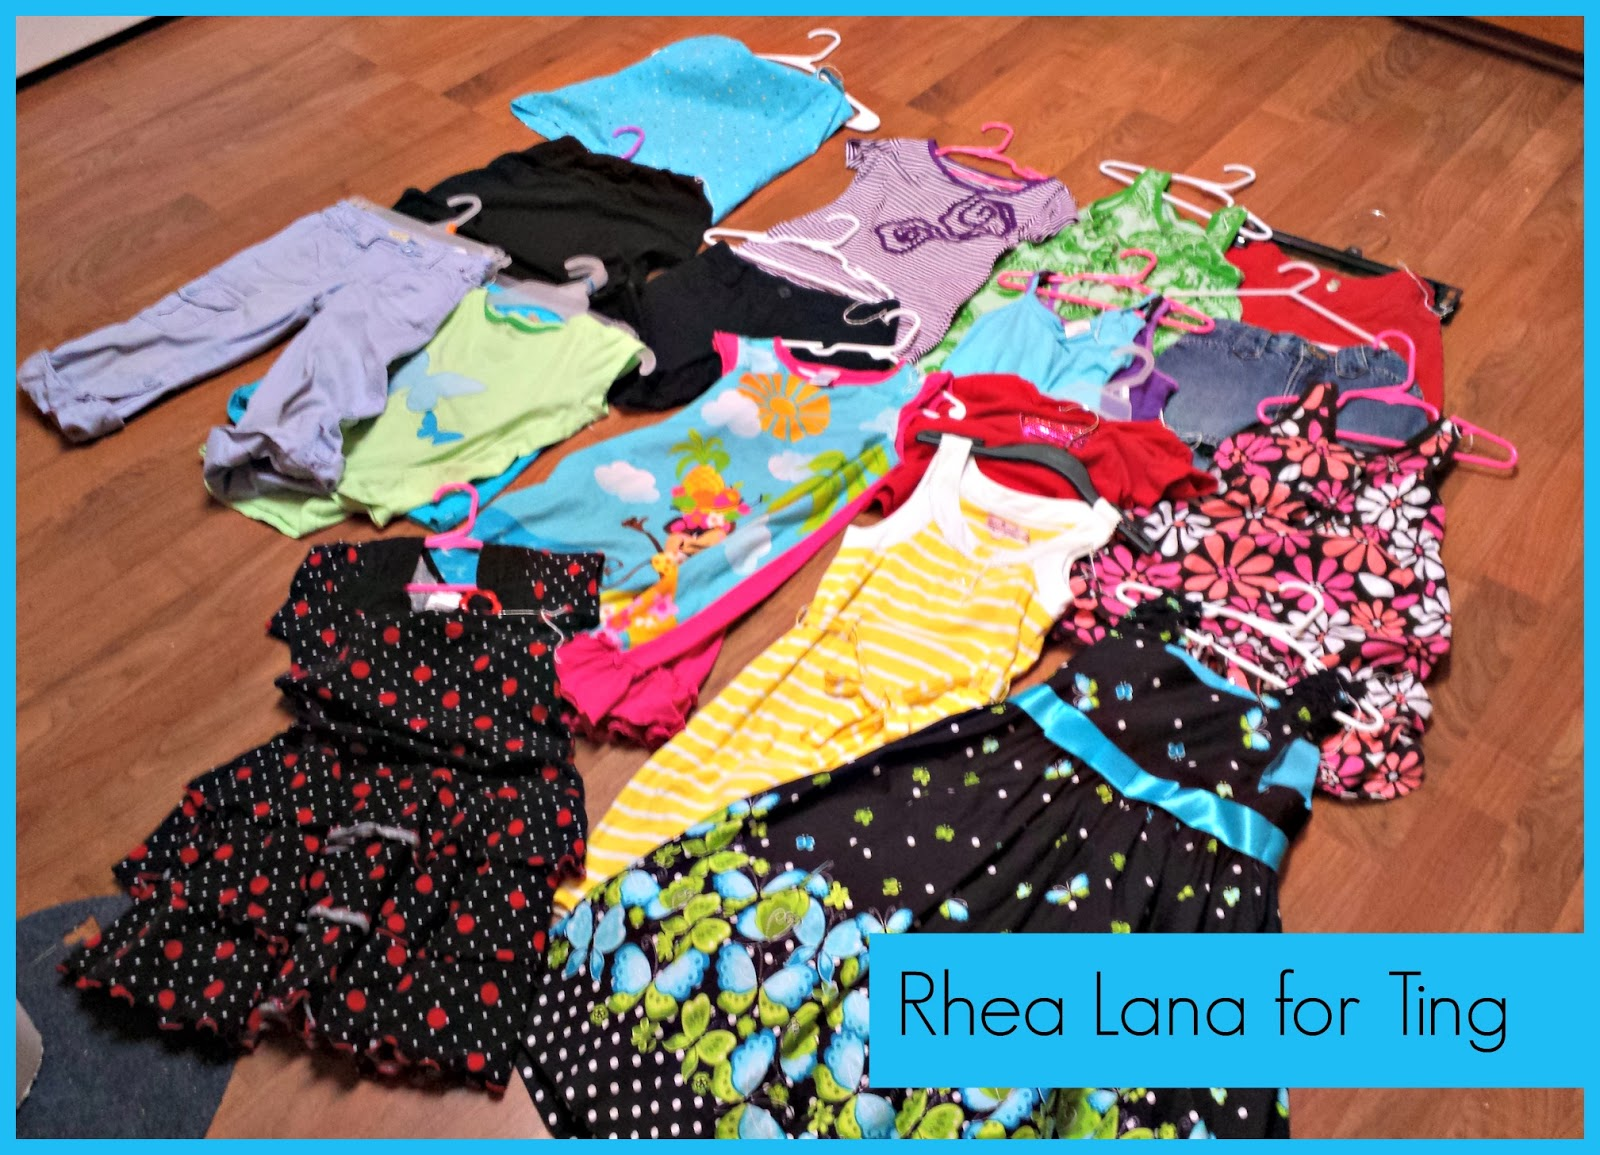 Rhea Lana Consignment Sale | #consignment #kids #savingmoney